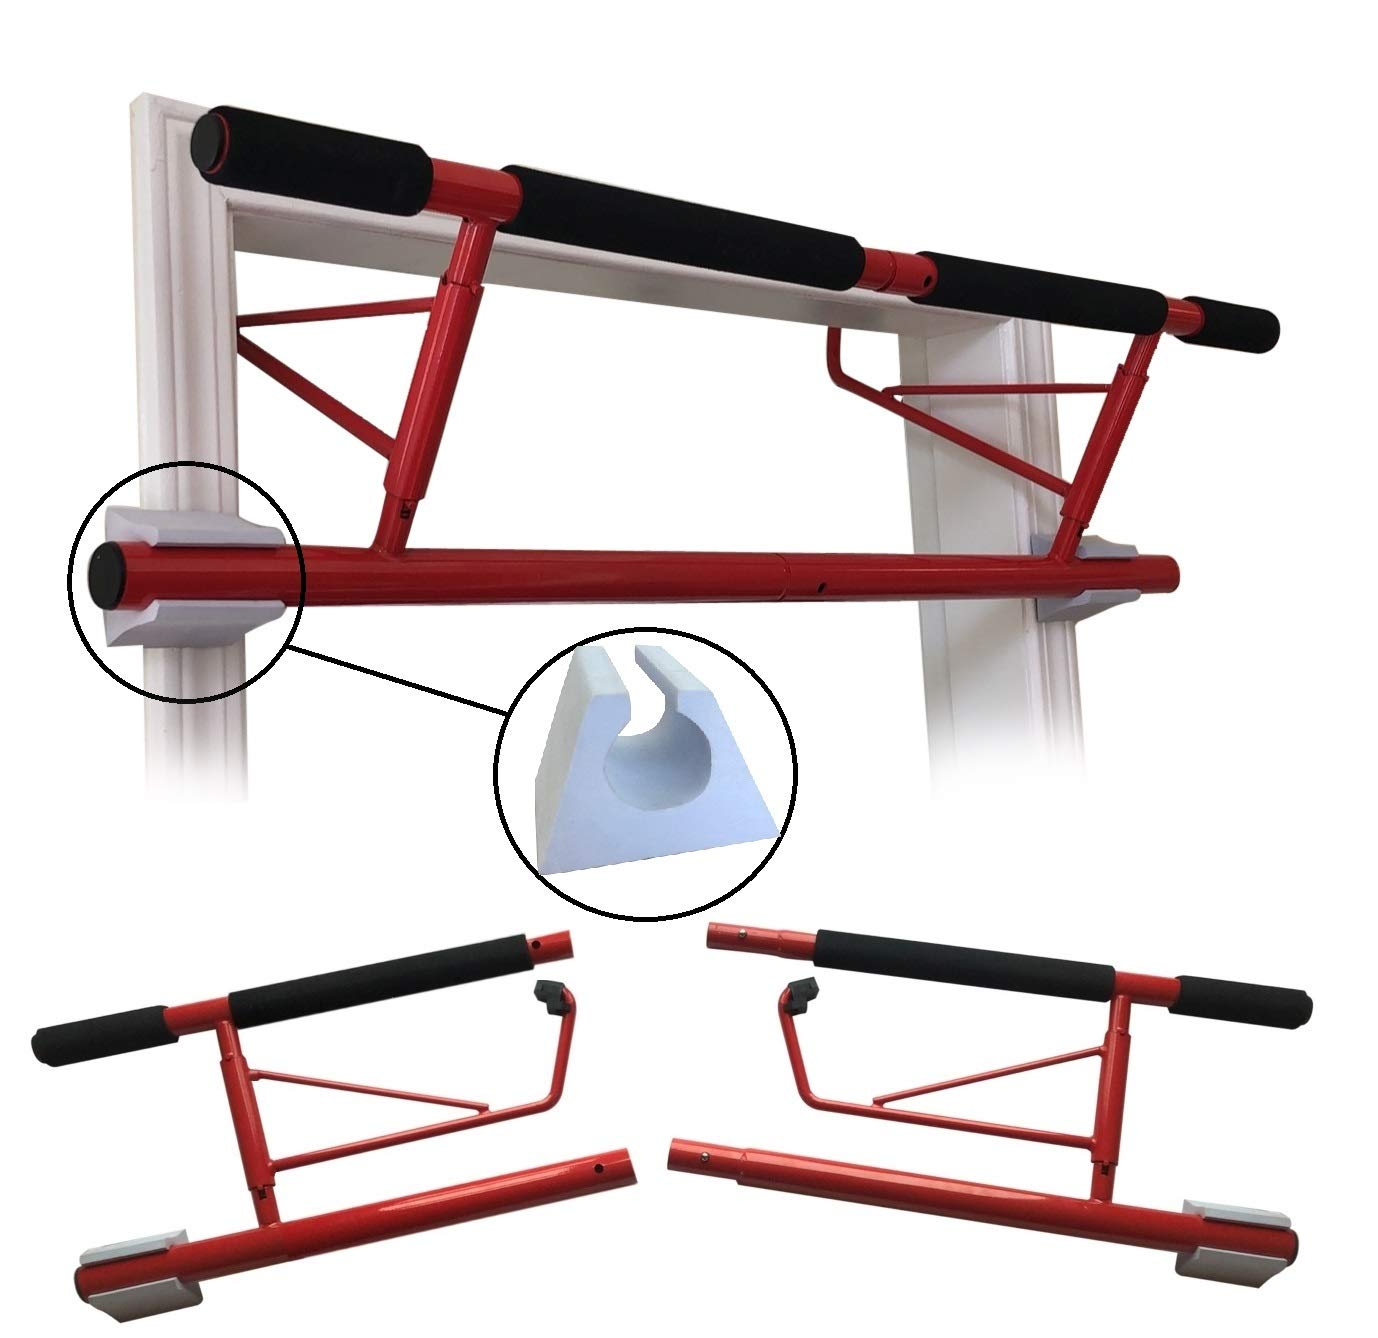 SHAMROCK TRIPLE GYM Ultimate Pull Up Bar, No Assembly Required, Folds Flat & Comes Apart for Travel Or Storage, USA Shipping and Warranty (Red)